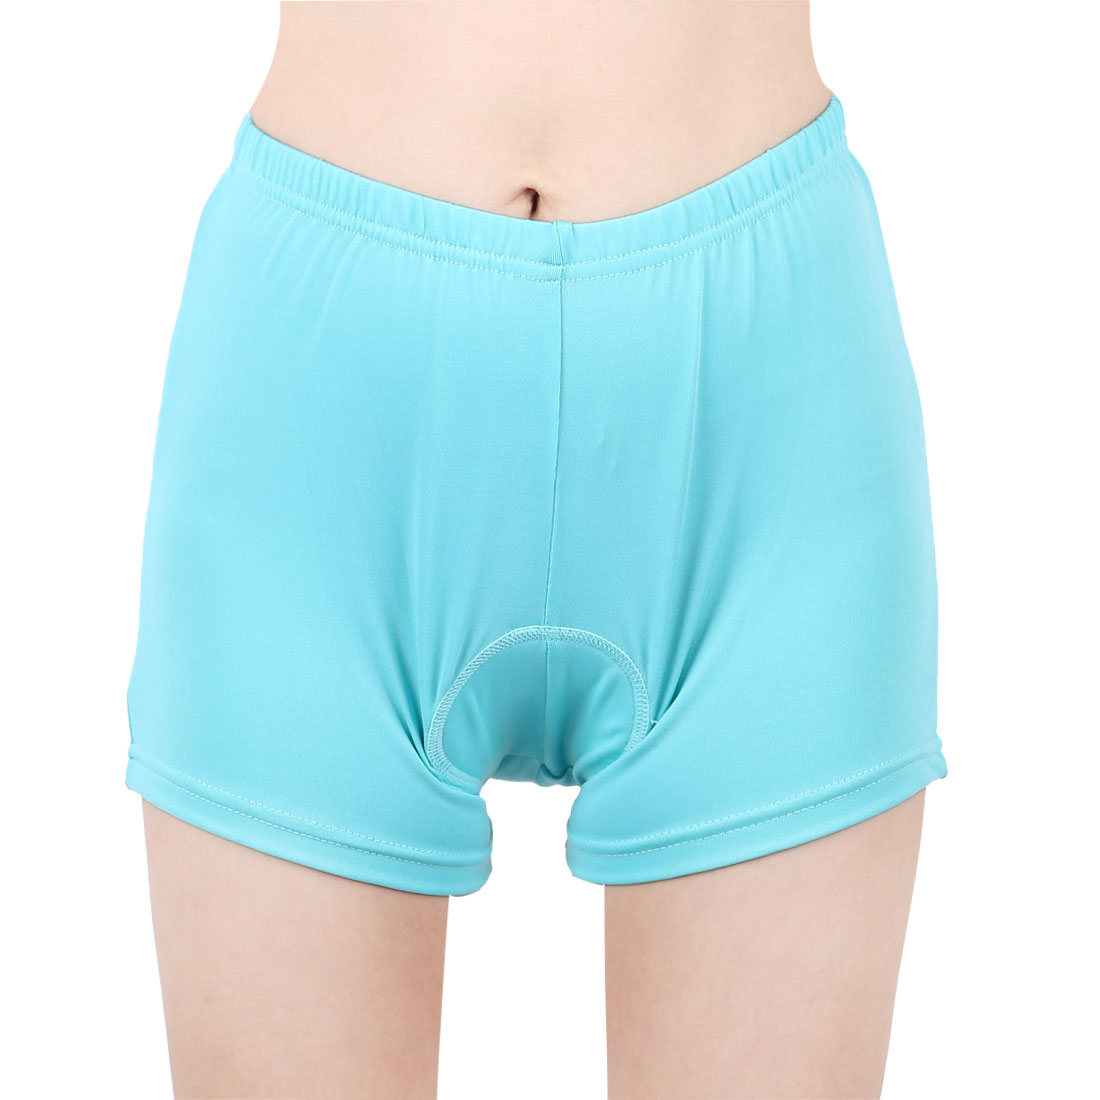 Women Bicycle Polyester Fiber Breathable 3D Padded Cycling Shorts Underwear Bike Short Blue S/XS (US 0)